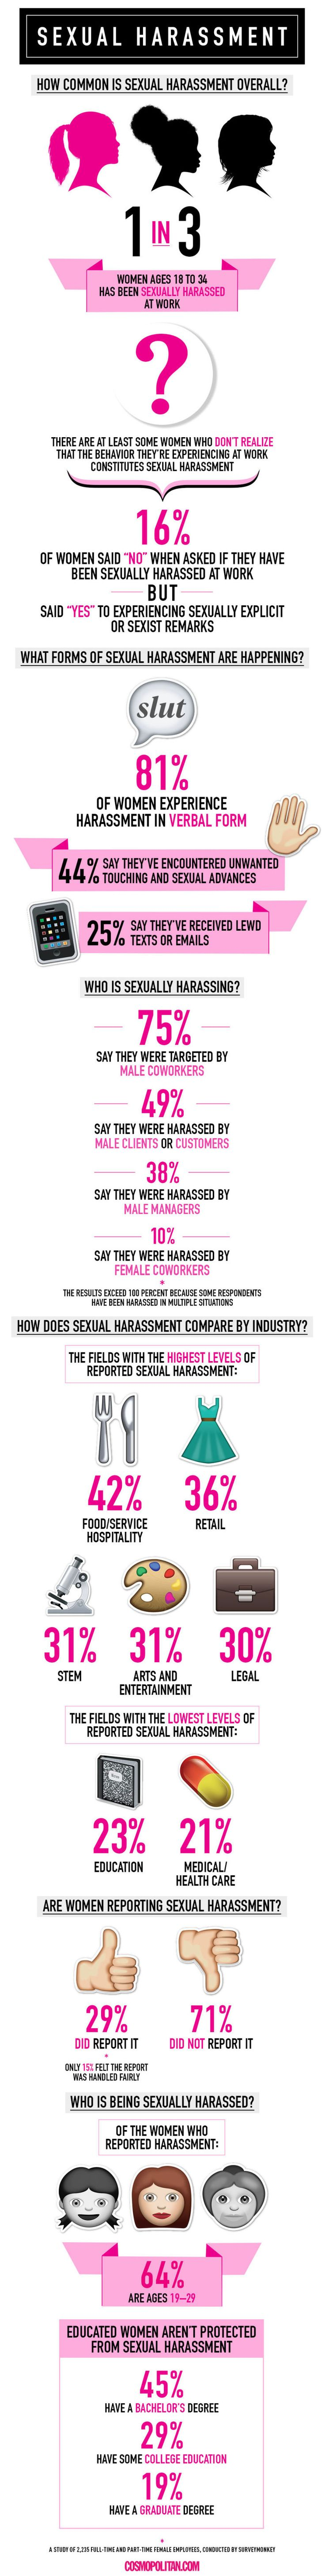 best ideas about motivation in the workplace survey 1 in 3 women has been sexually harassed at work